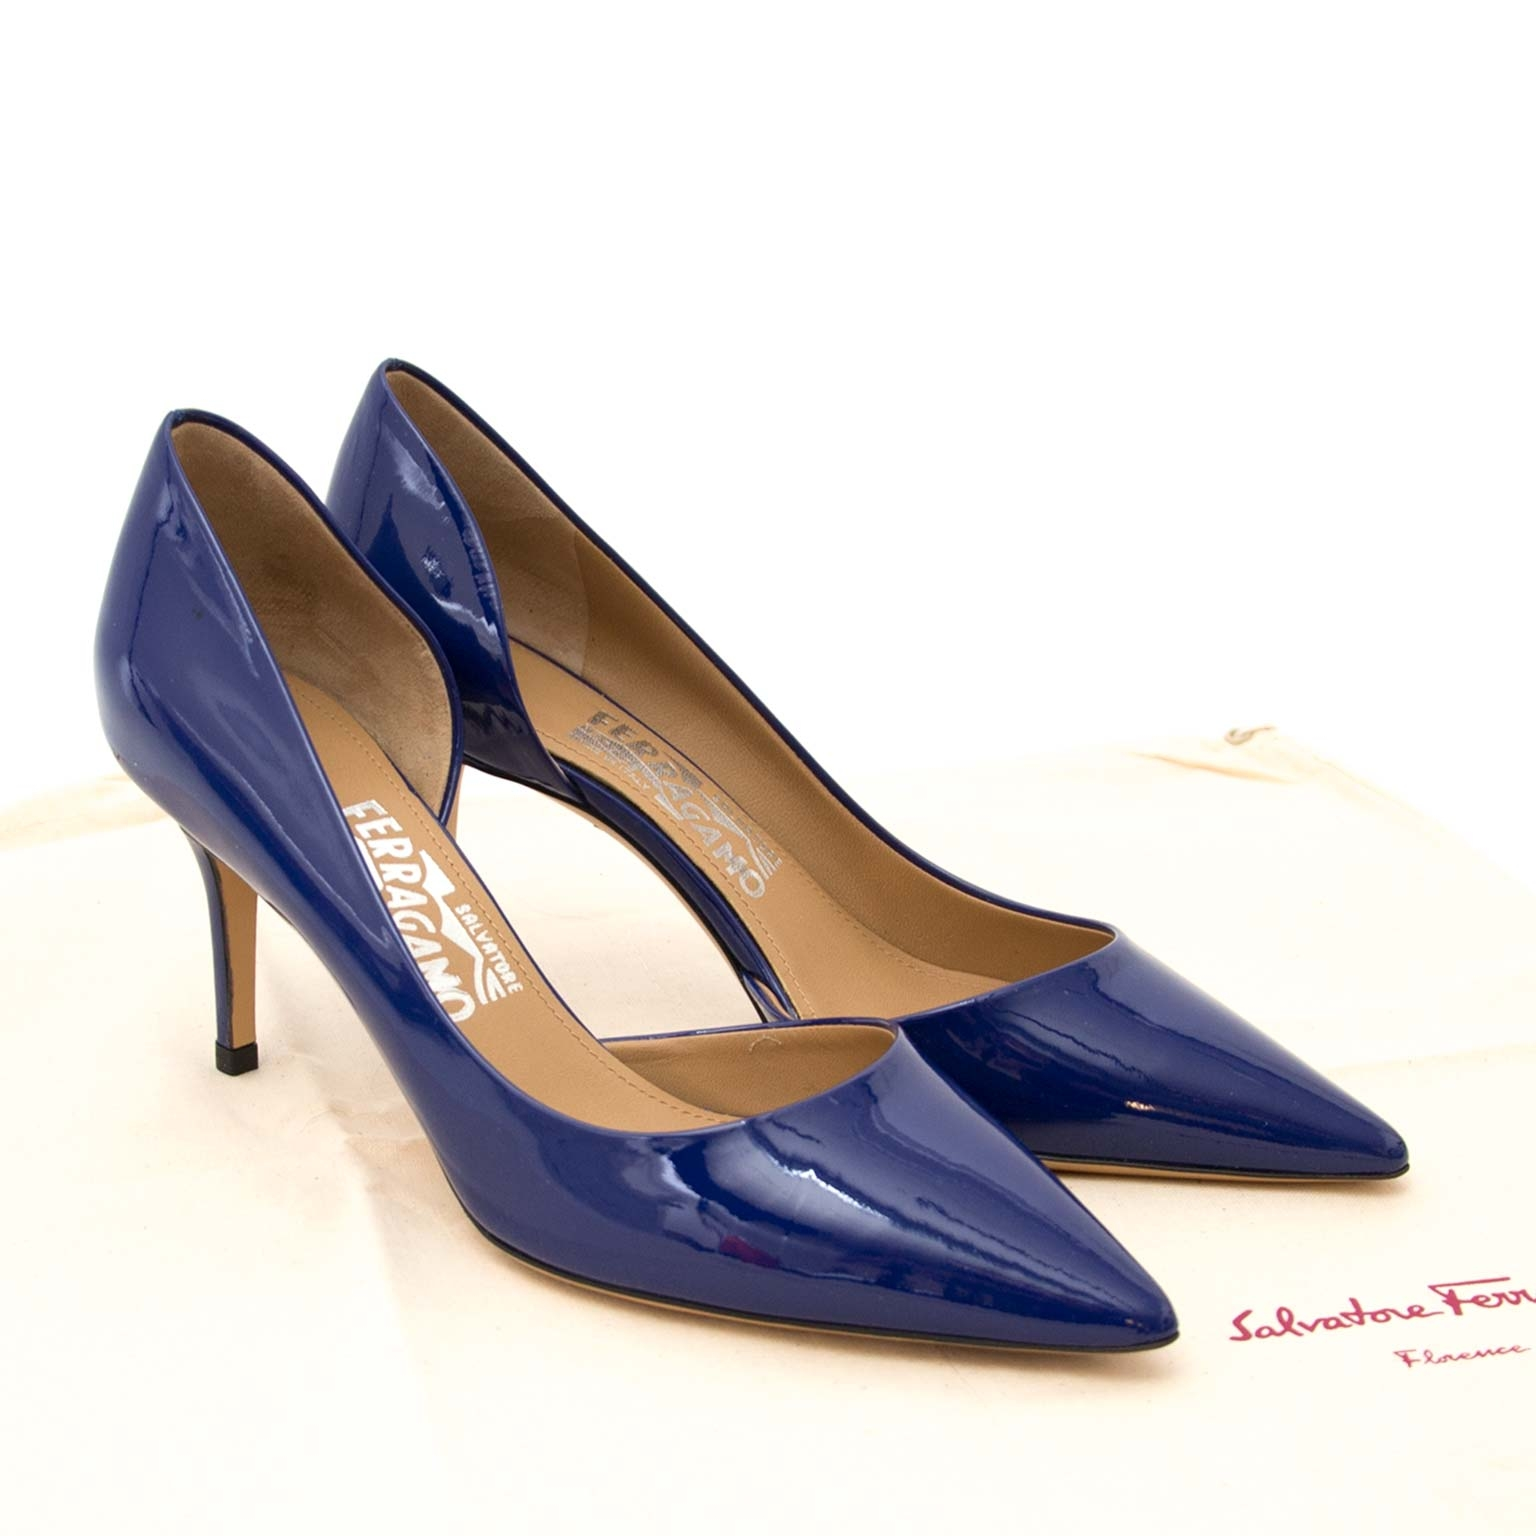 salvatore ferragamo blue patent pam glas pumps now for sale at labellov vintage fashion webshop belgium